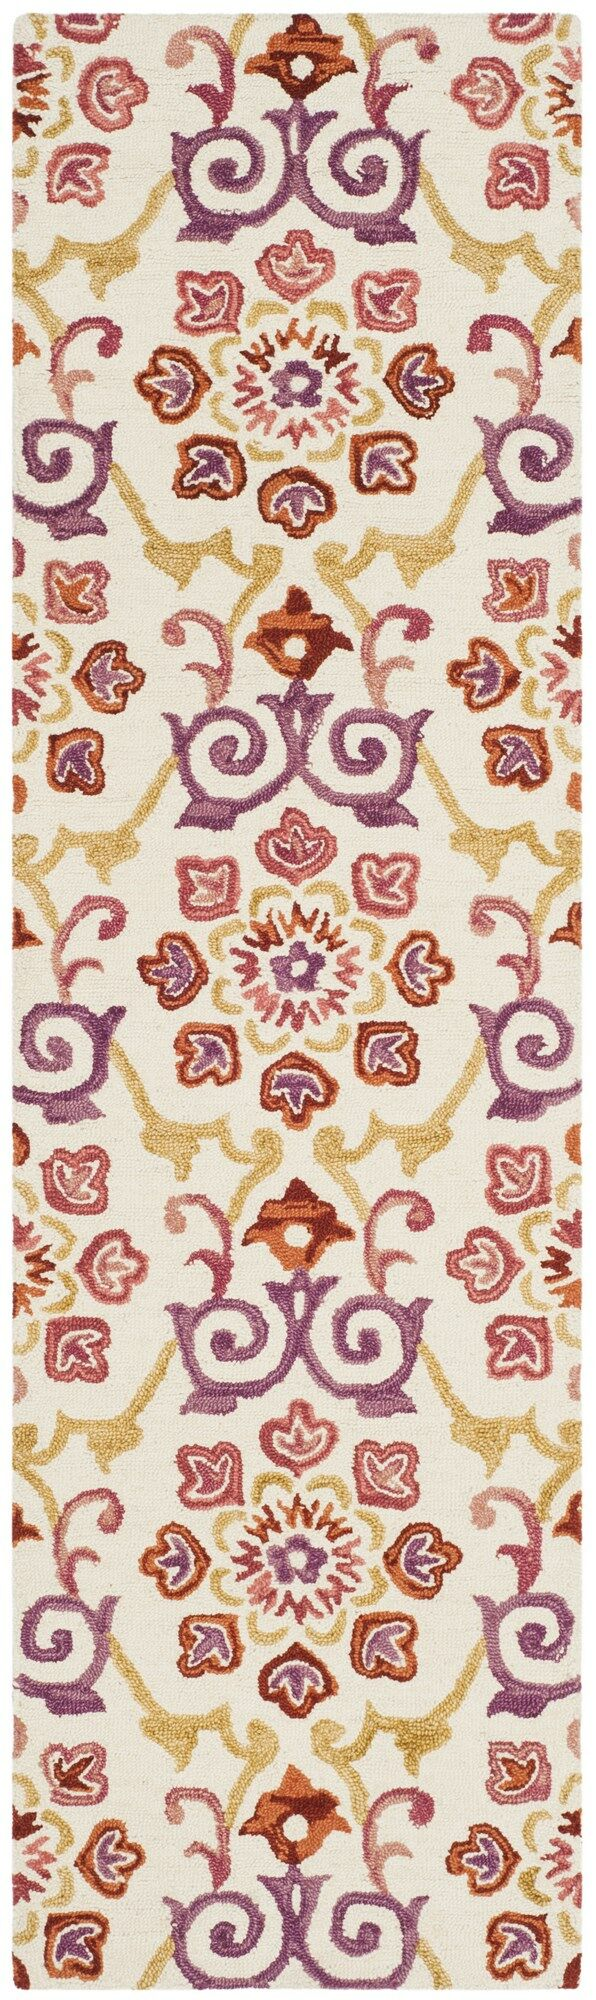 Tomo Hand-Hooked Ivory/Rust Area Rug Rug Size: Runner 2'3